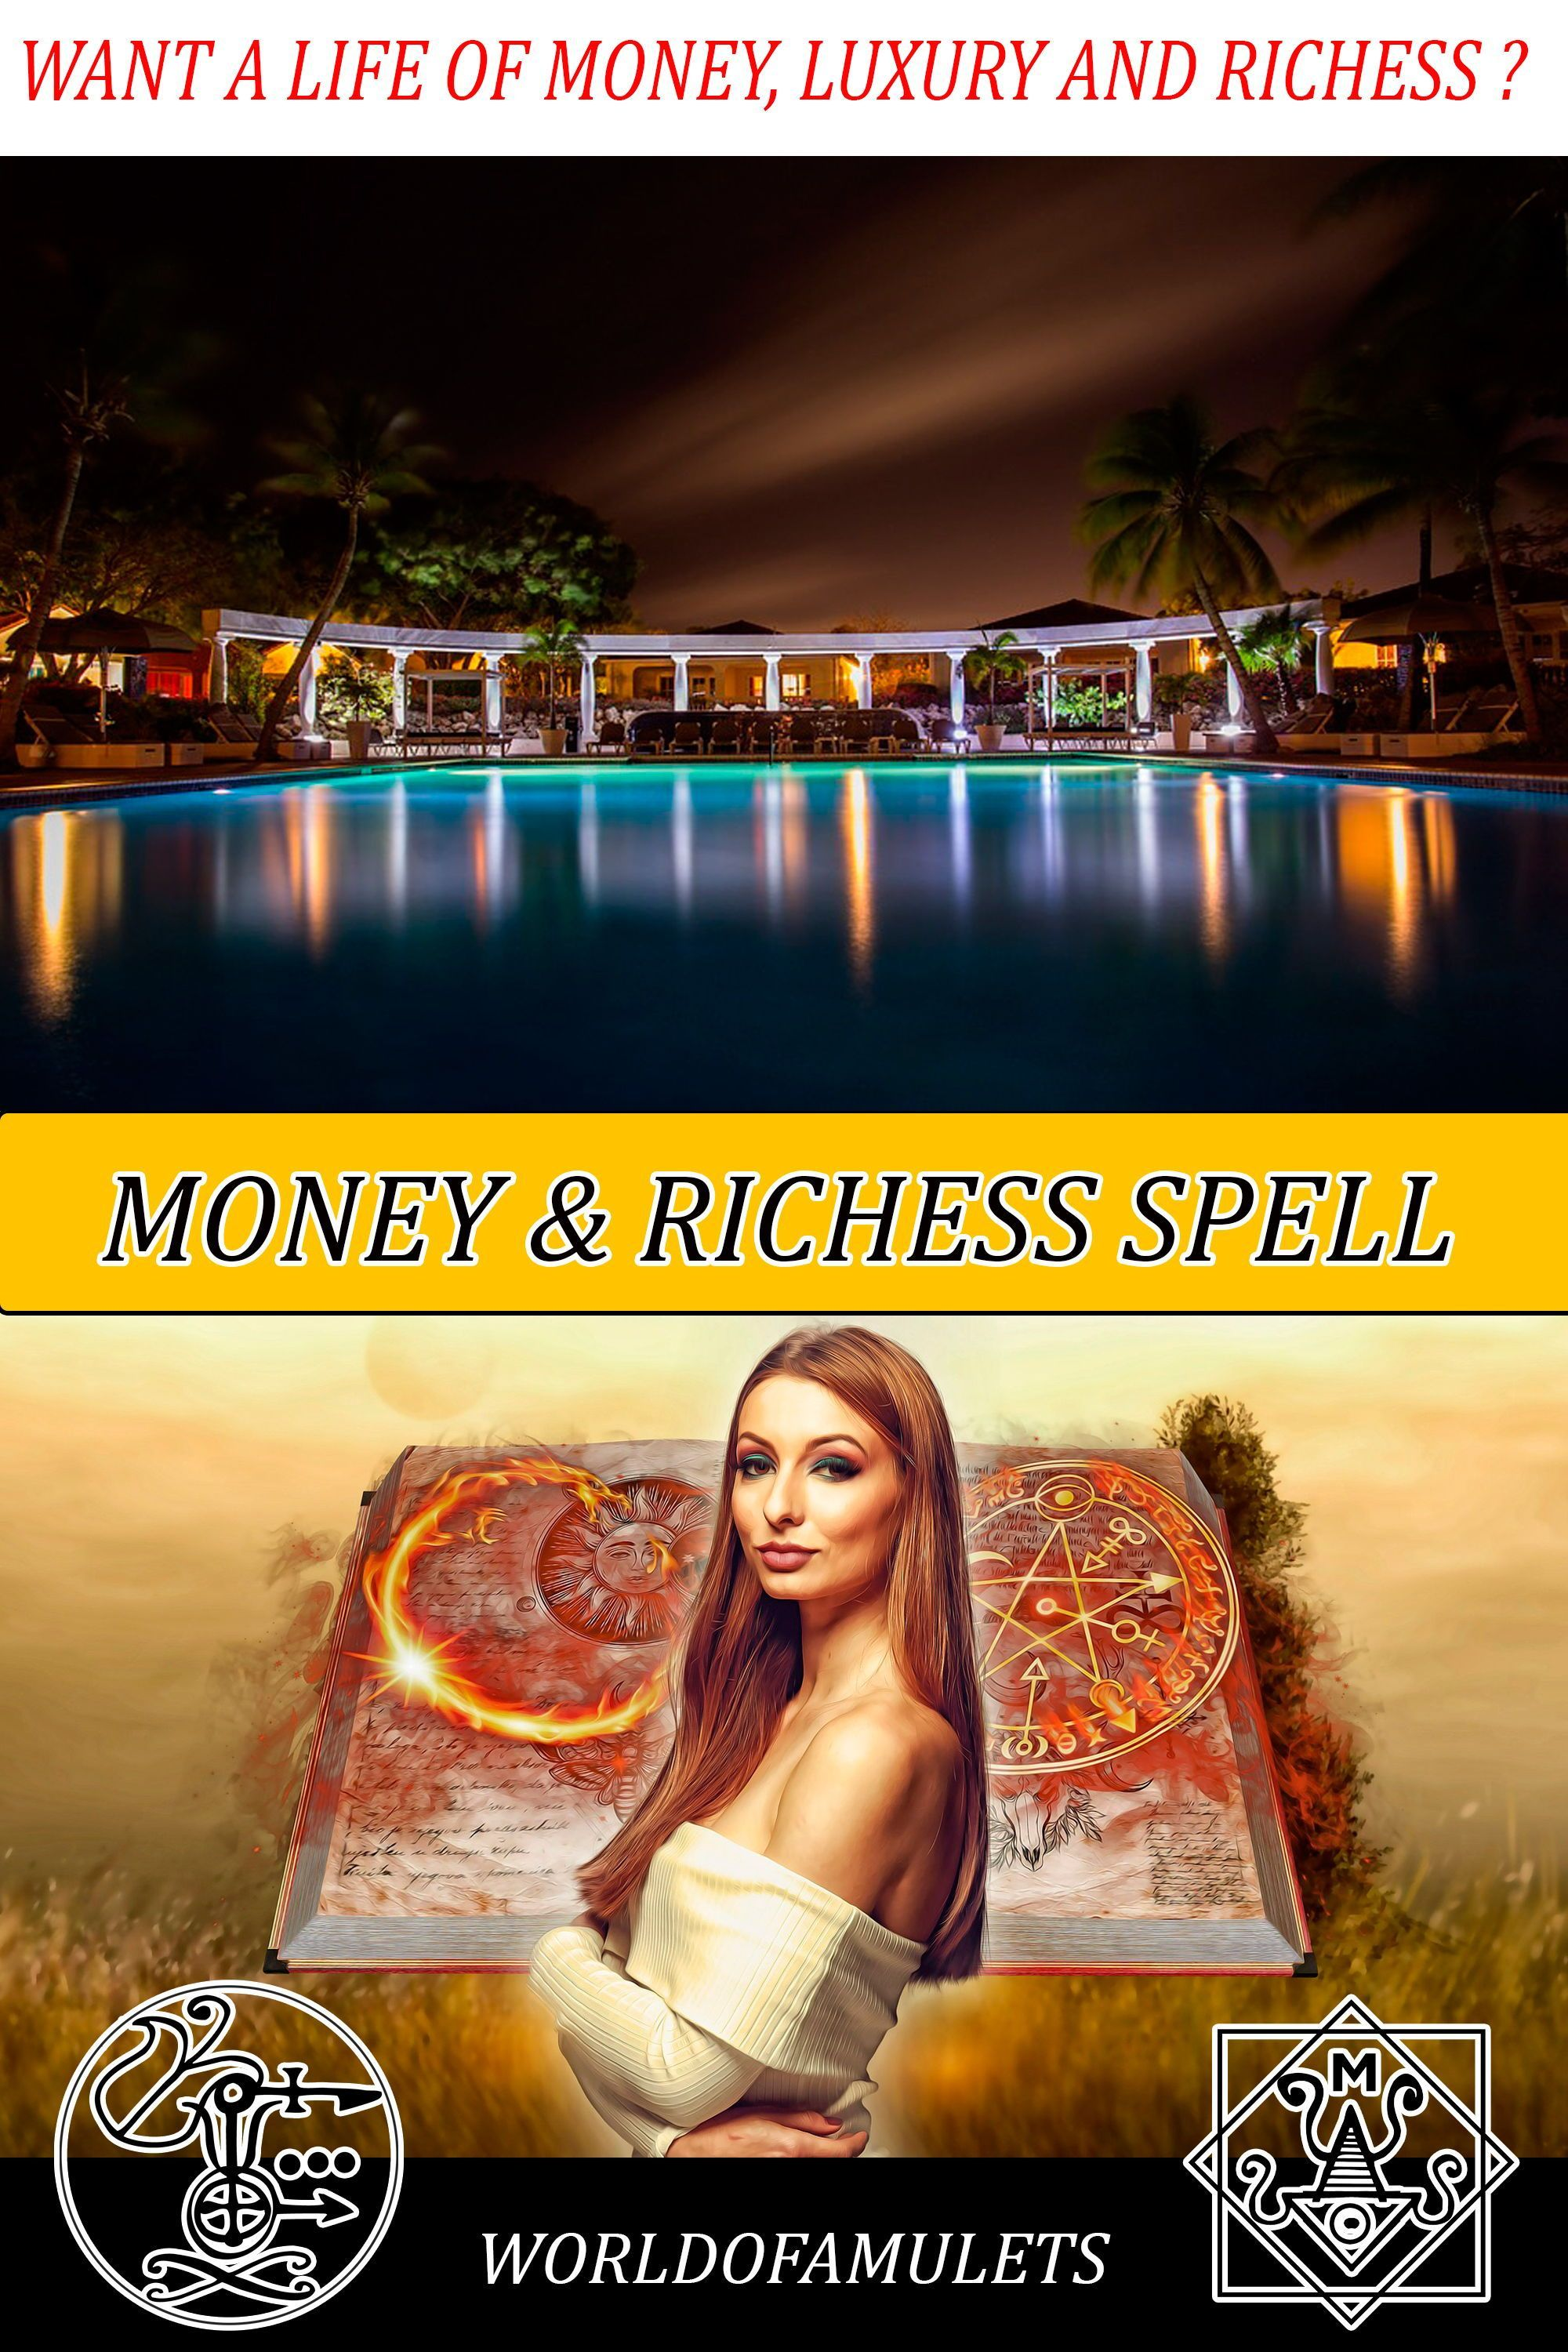 Witchcraft Wealth and Money Spell with Baal School of witchcraft and Wizardry School Beginner Witchcraft Spells #moneyspells Want a life of richess, money, wealth, expensive jewelry, luxury cars and homes and dream vacations?  Our Money Spell can make this true. Check the reviews  #money #spell #wealth #richess #moneyspells